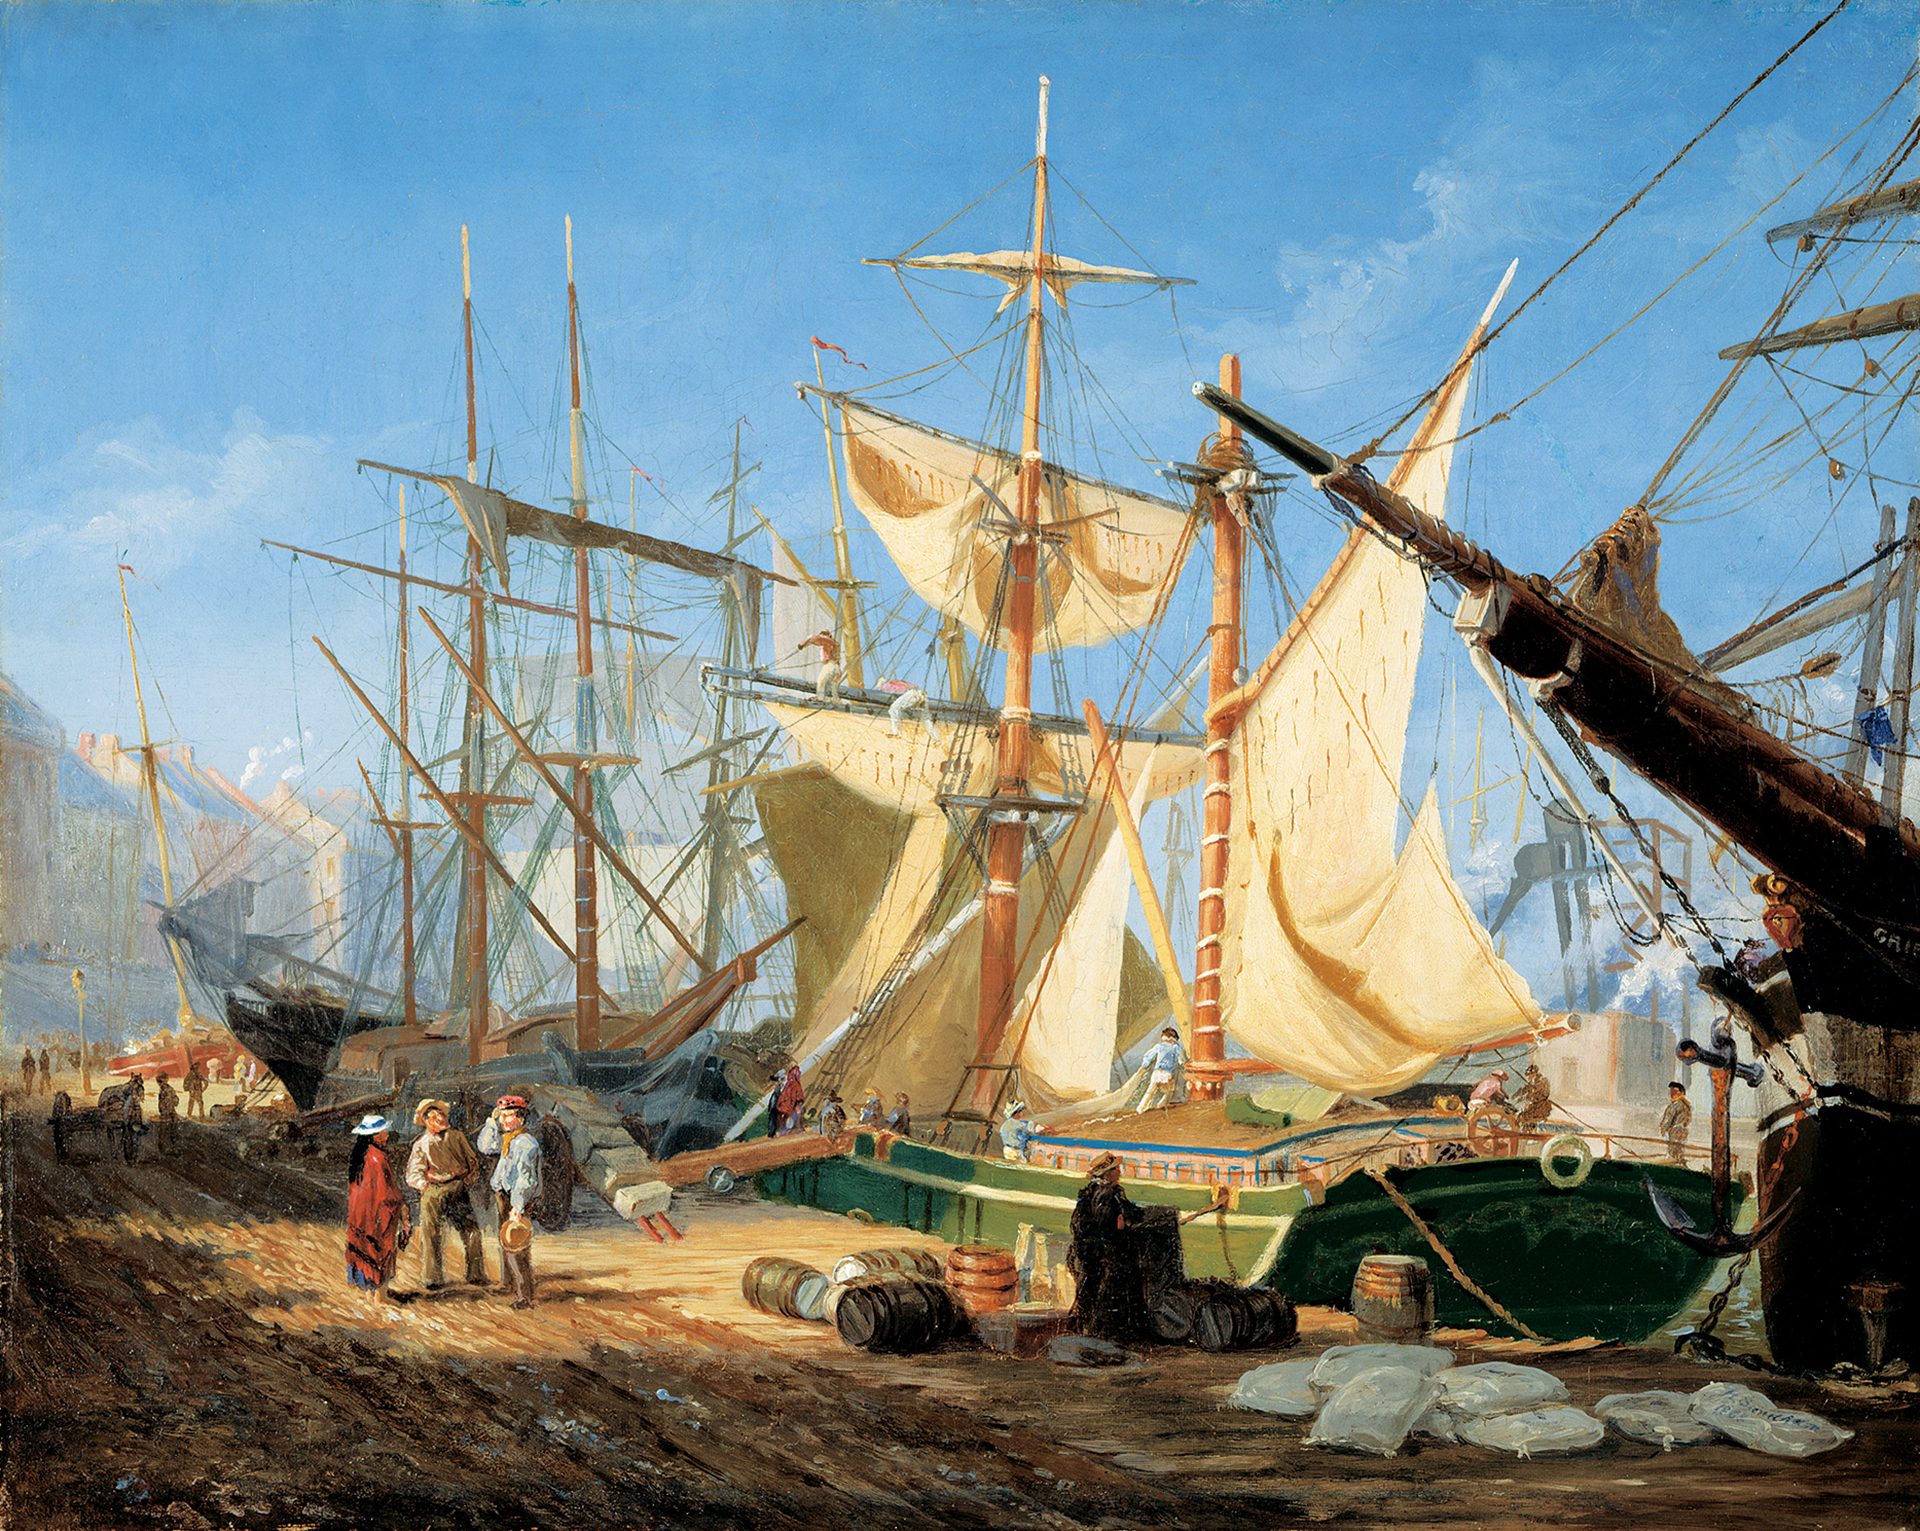 This painting shows three anchored ships profiled against a blue sky. Several figures are at work on the ship in the foreground, while two men and a woman converse on the wharf.